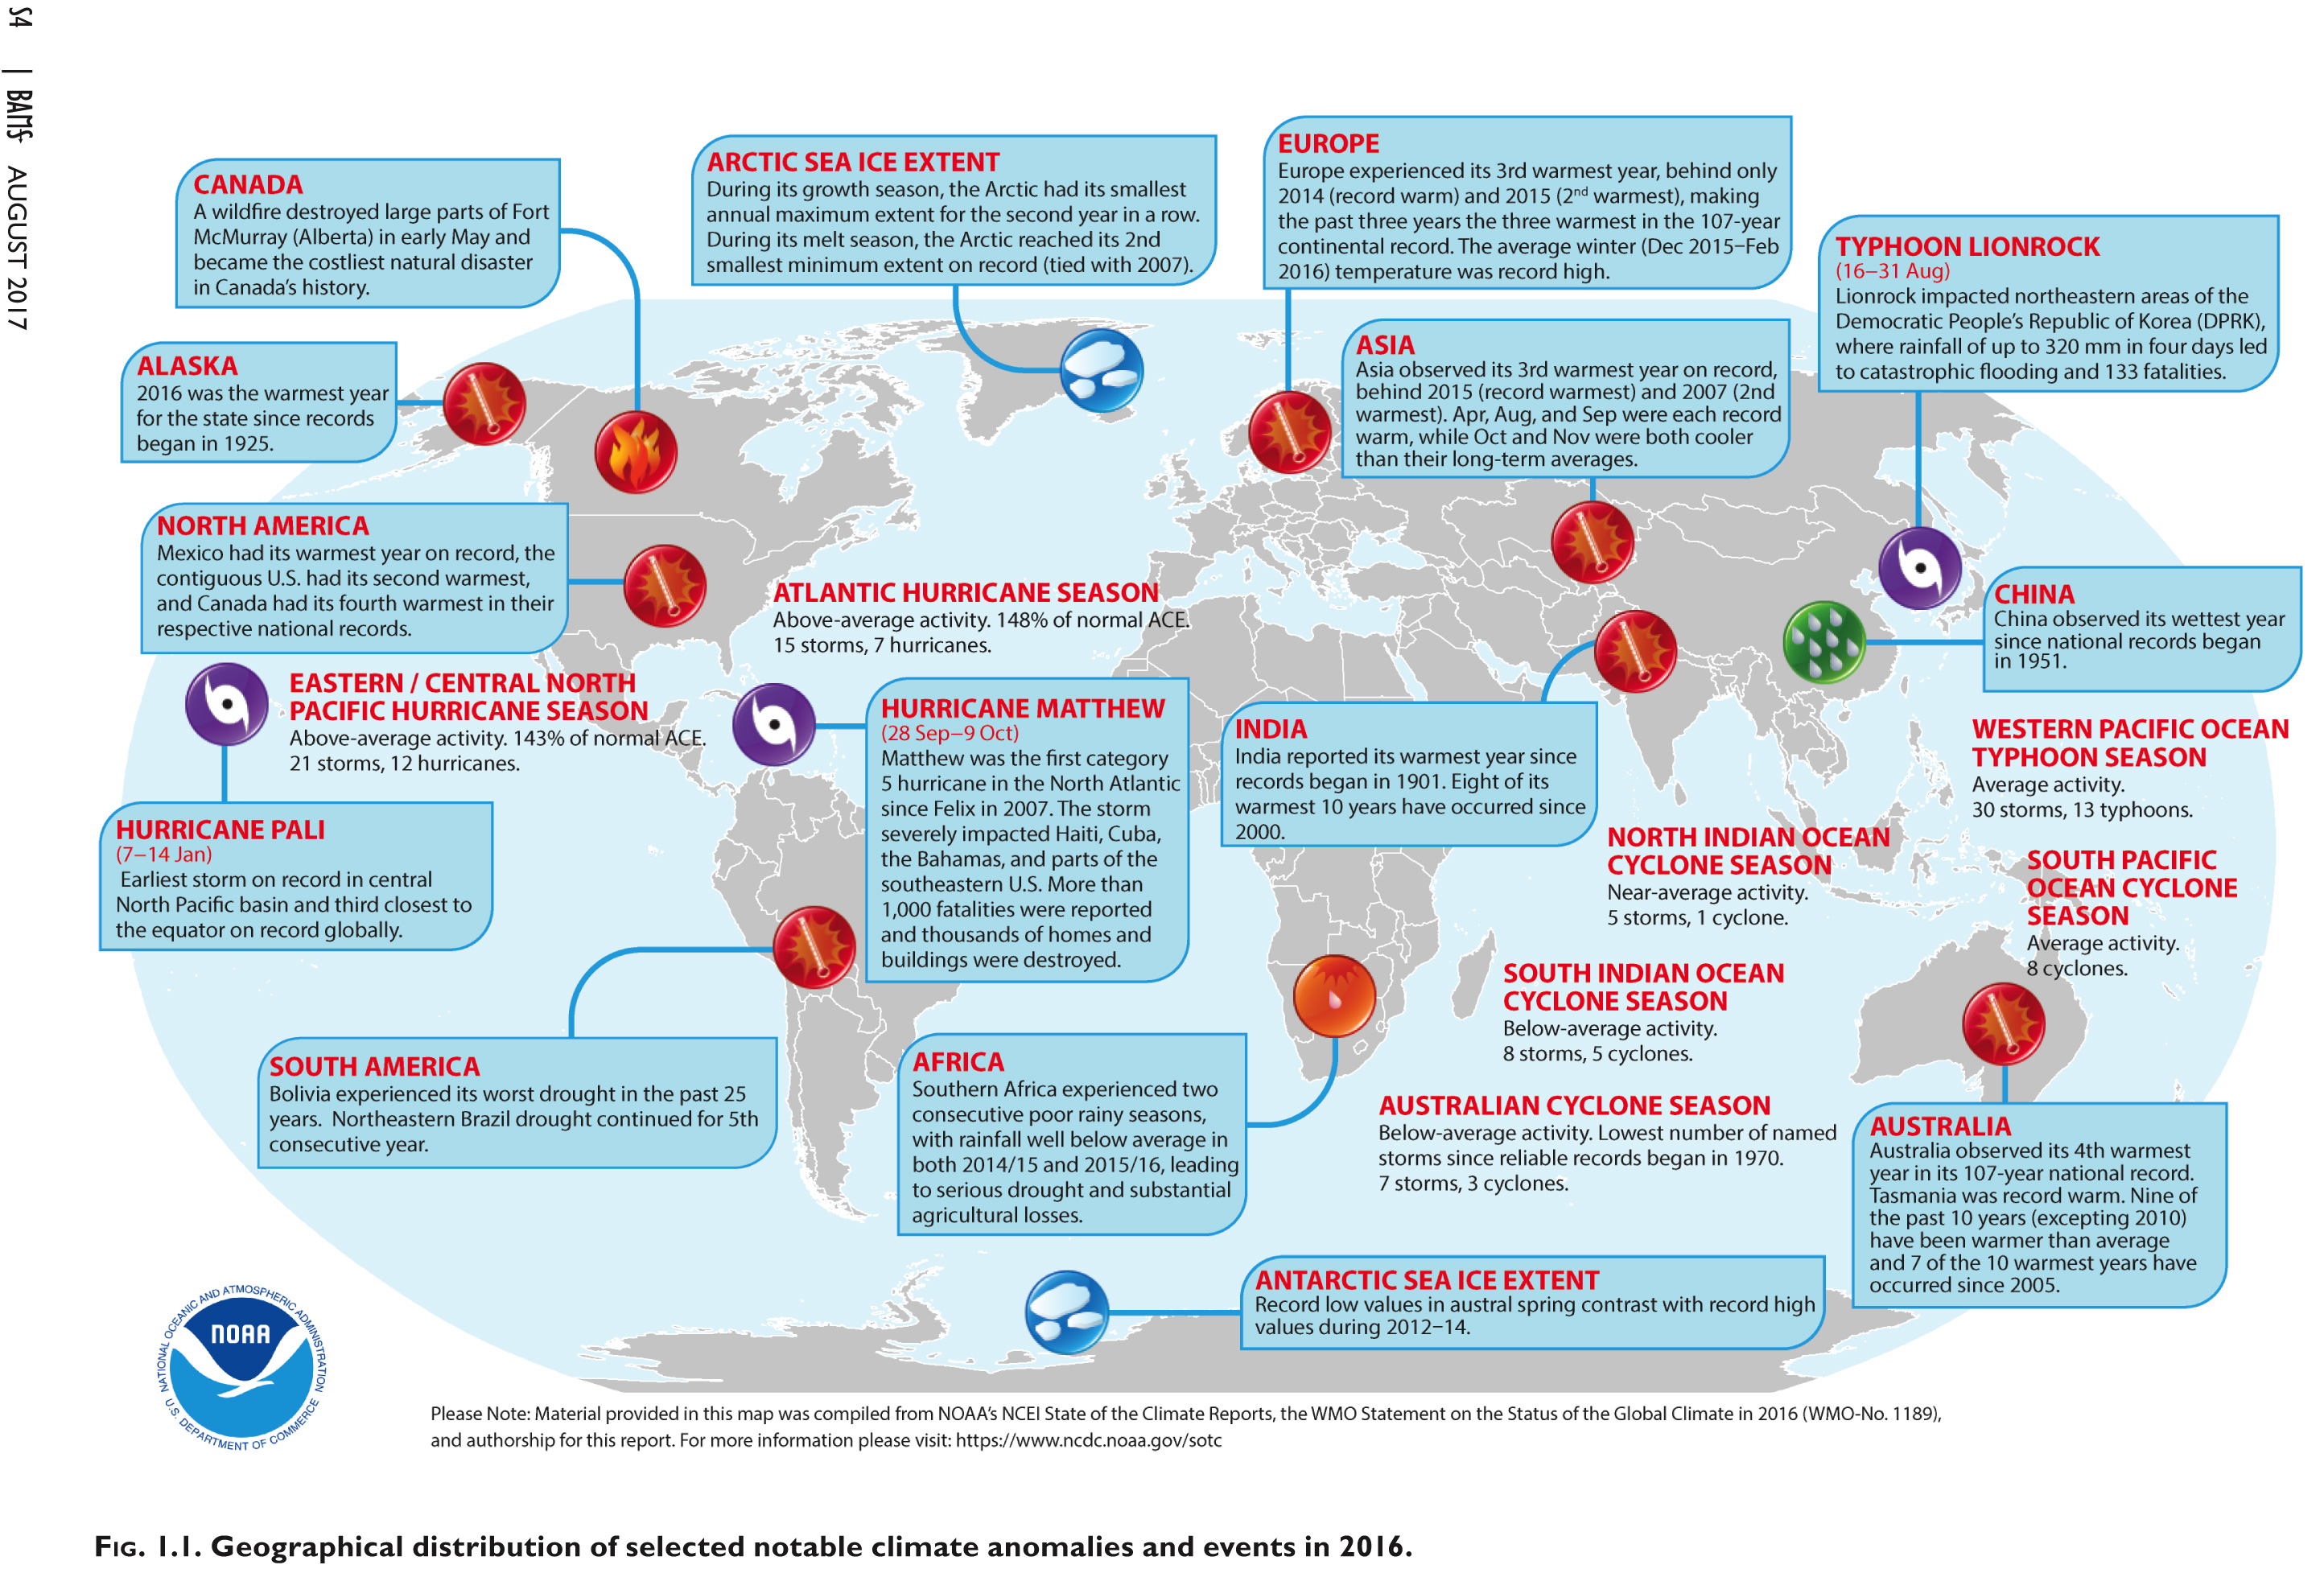 The image above highlights the various climate events in 2016. Significant and extreme weather anomalies are included.